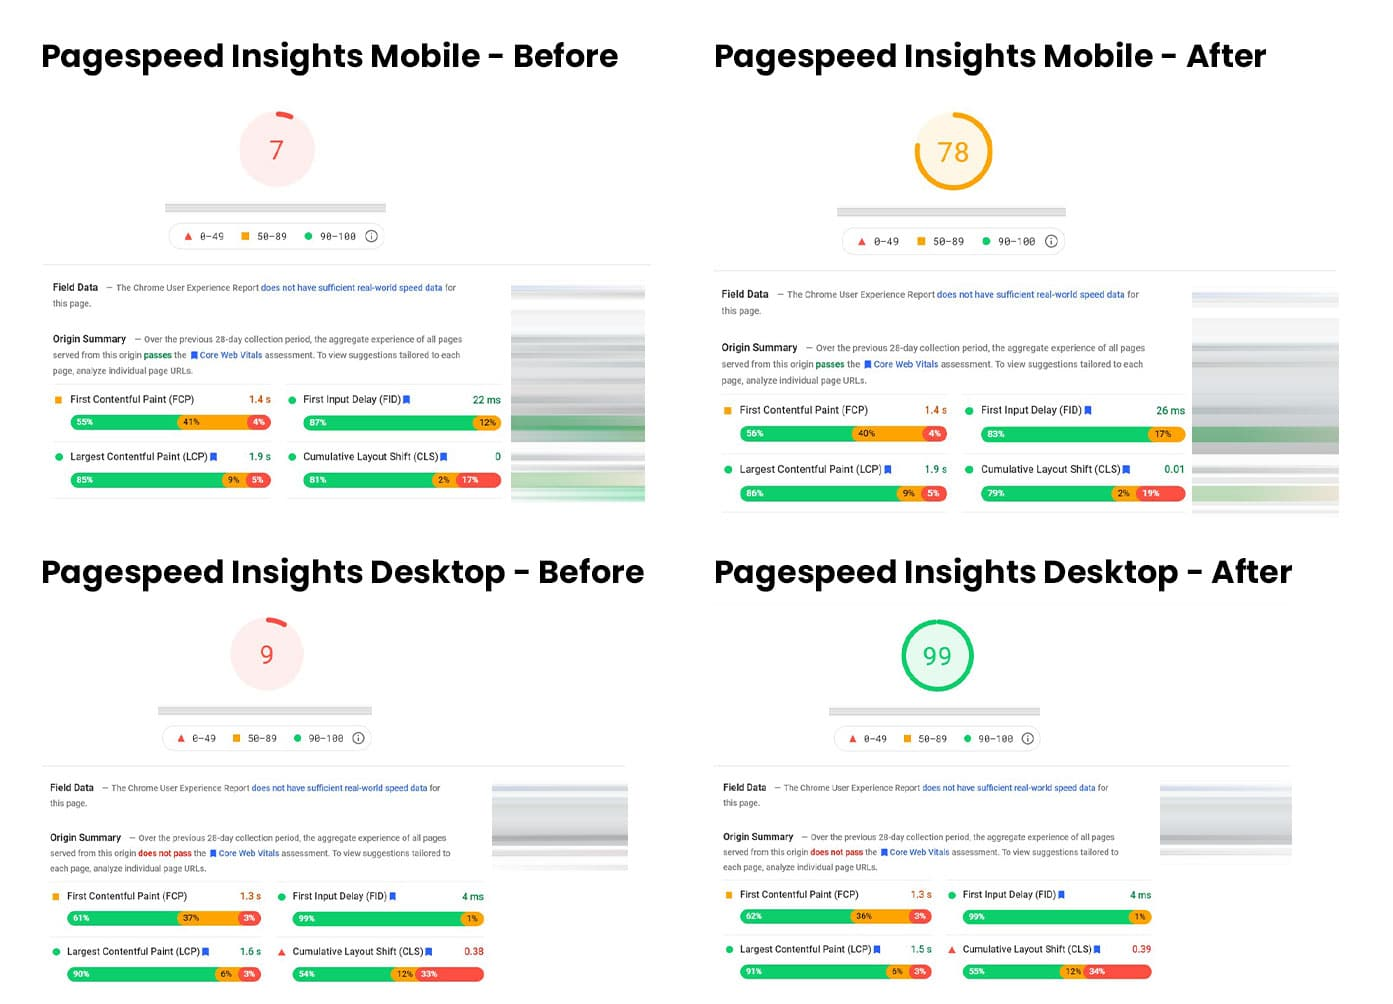 Pagespeed insights results showing mobile score at 7 before and 78 after site speed optimization. Desktop was at 9 before and now sitting at 99.